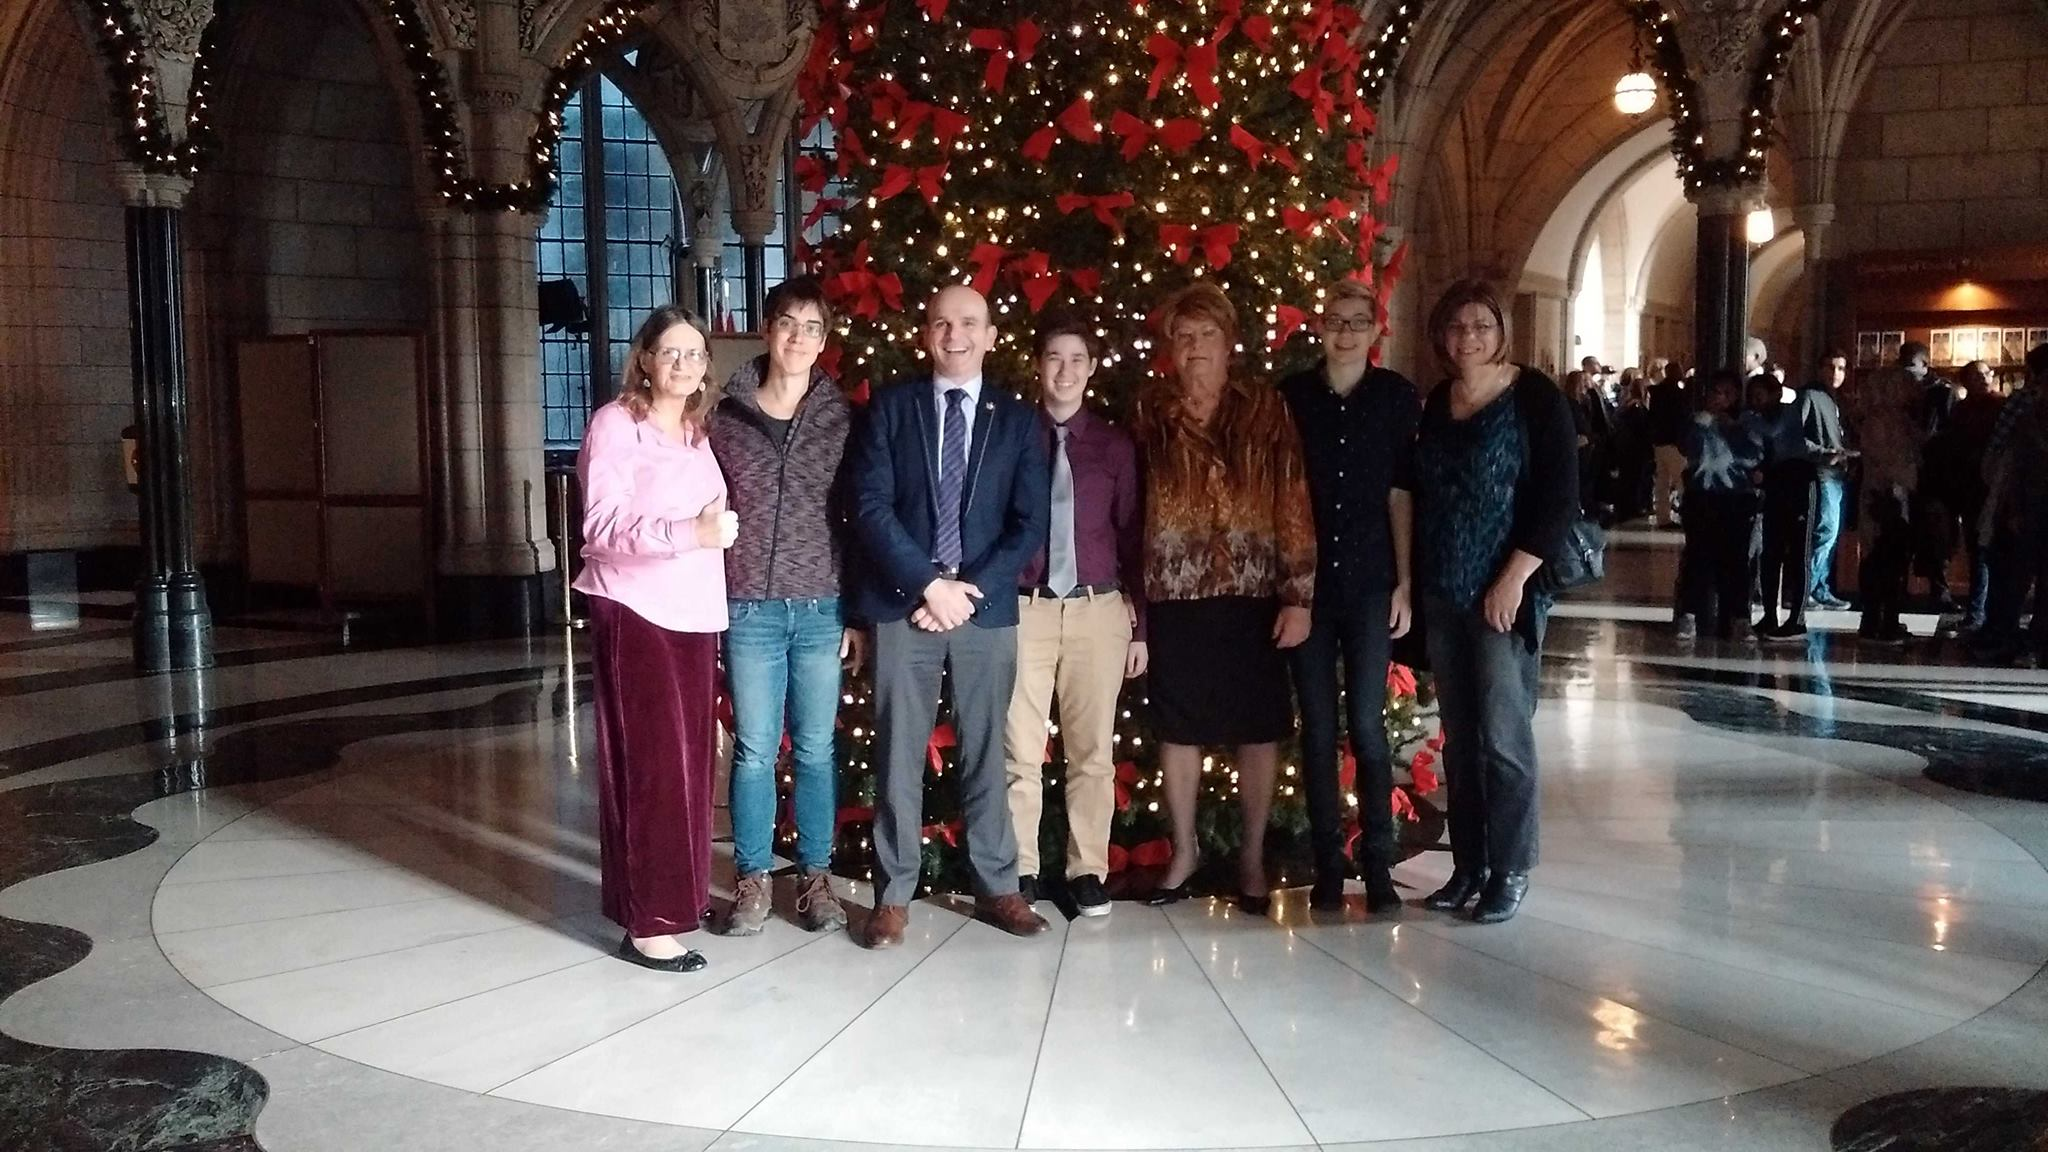 Left to right: Susan Gapka, me, the Special Advisor to the Prime Minister on LGBTQ2 Issues MP Randy Boissonault, Kaden, unknown, Kye, Amanda Ryan.